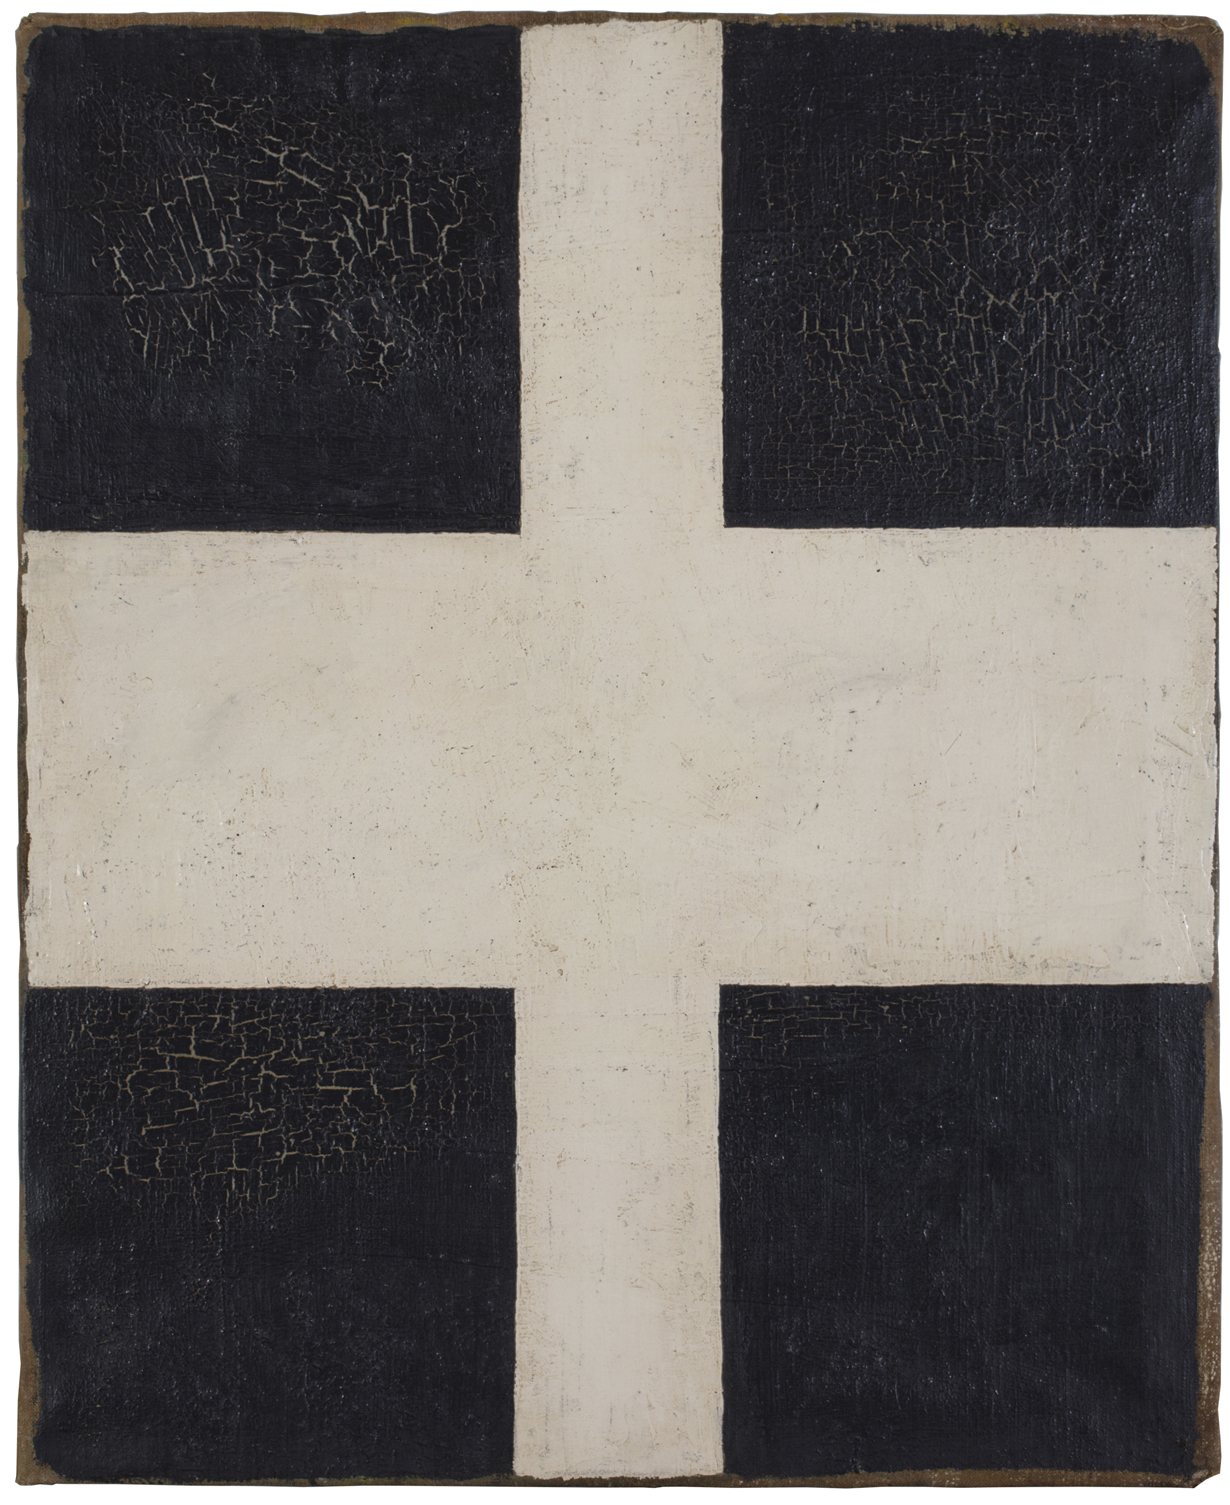 """Unattributed. Unsigned. In the style of Kasimir Malevich.Label on reverse in Russian translates to """"It is verified 1939"""".   Oil on canvas. 60 x 50.5 cm.      Website devoted to this painting:  www.thesuprematistwhitecross.com"""